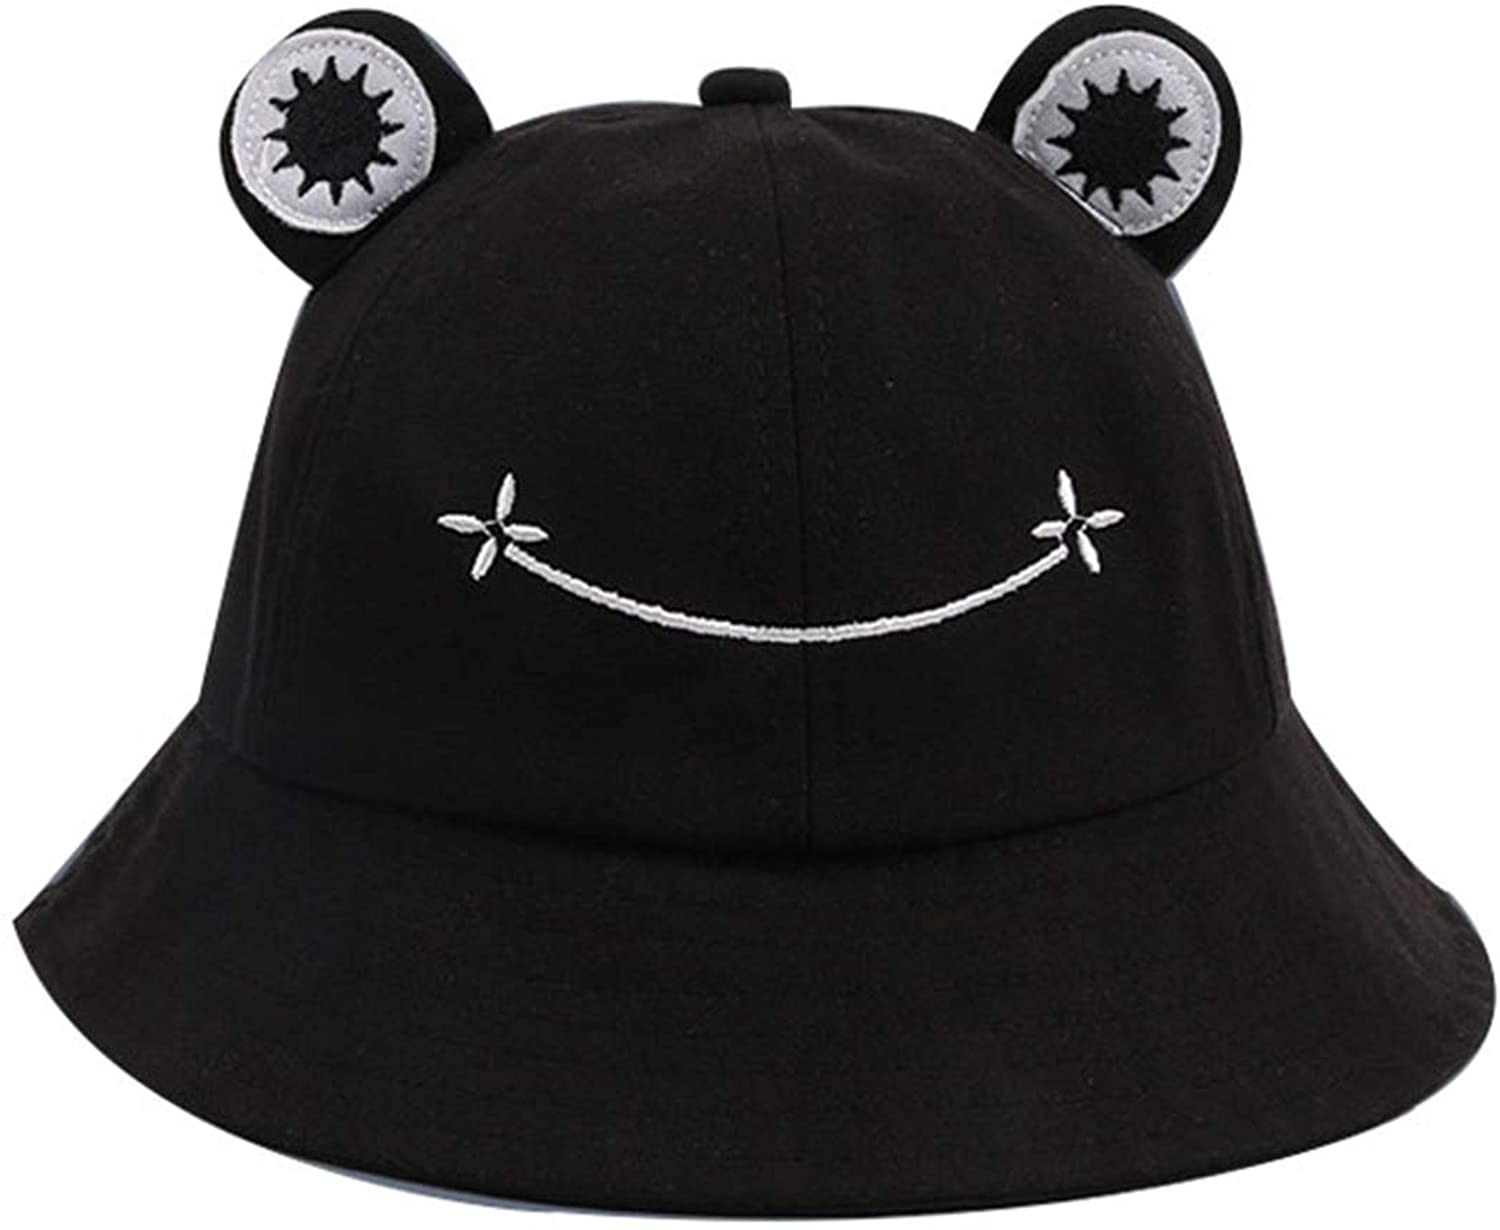 DAYUANDIAN Cute Frog Bucket Hat Fishermen Hat Sun Protection Beach Caps Summer Outing Hat Wide Brim Hat for Kids Adults